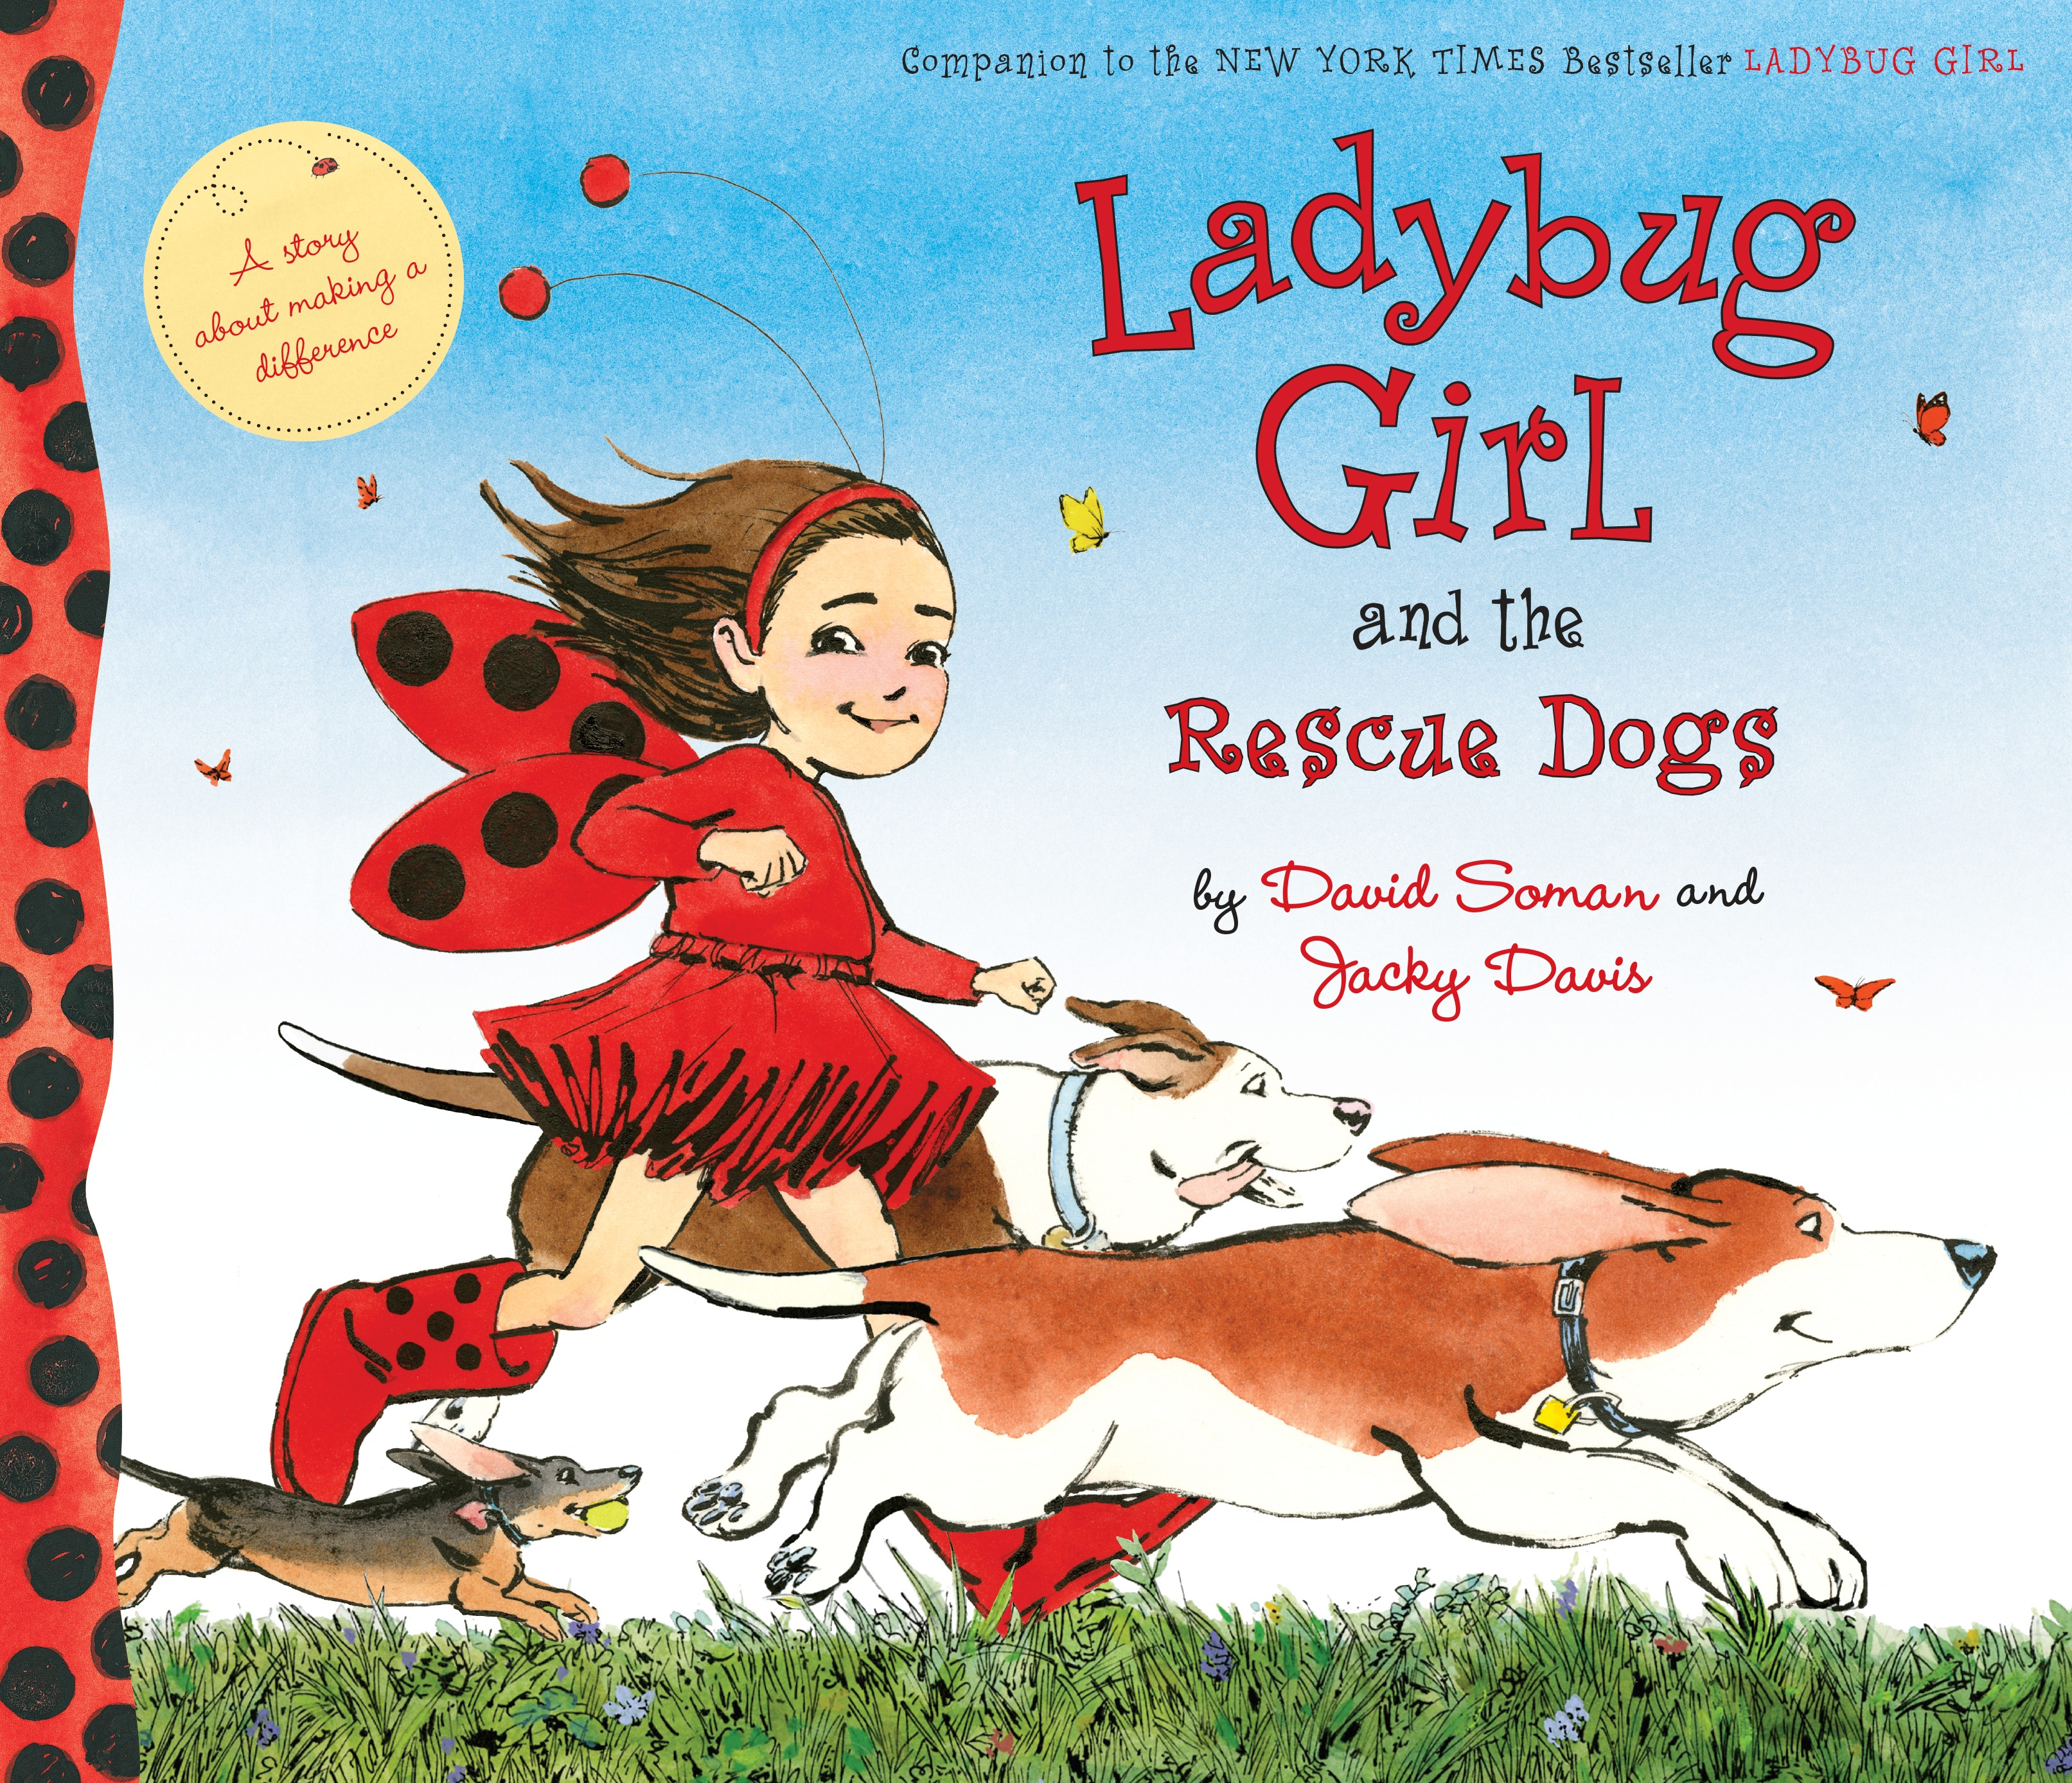 Sunday Story Time with David Soman & Jacky Davis (Authors of Ladybug Girl and the Rescue Dogs)